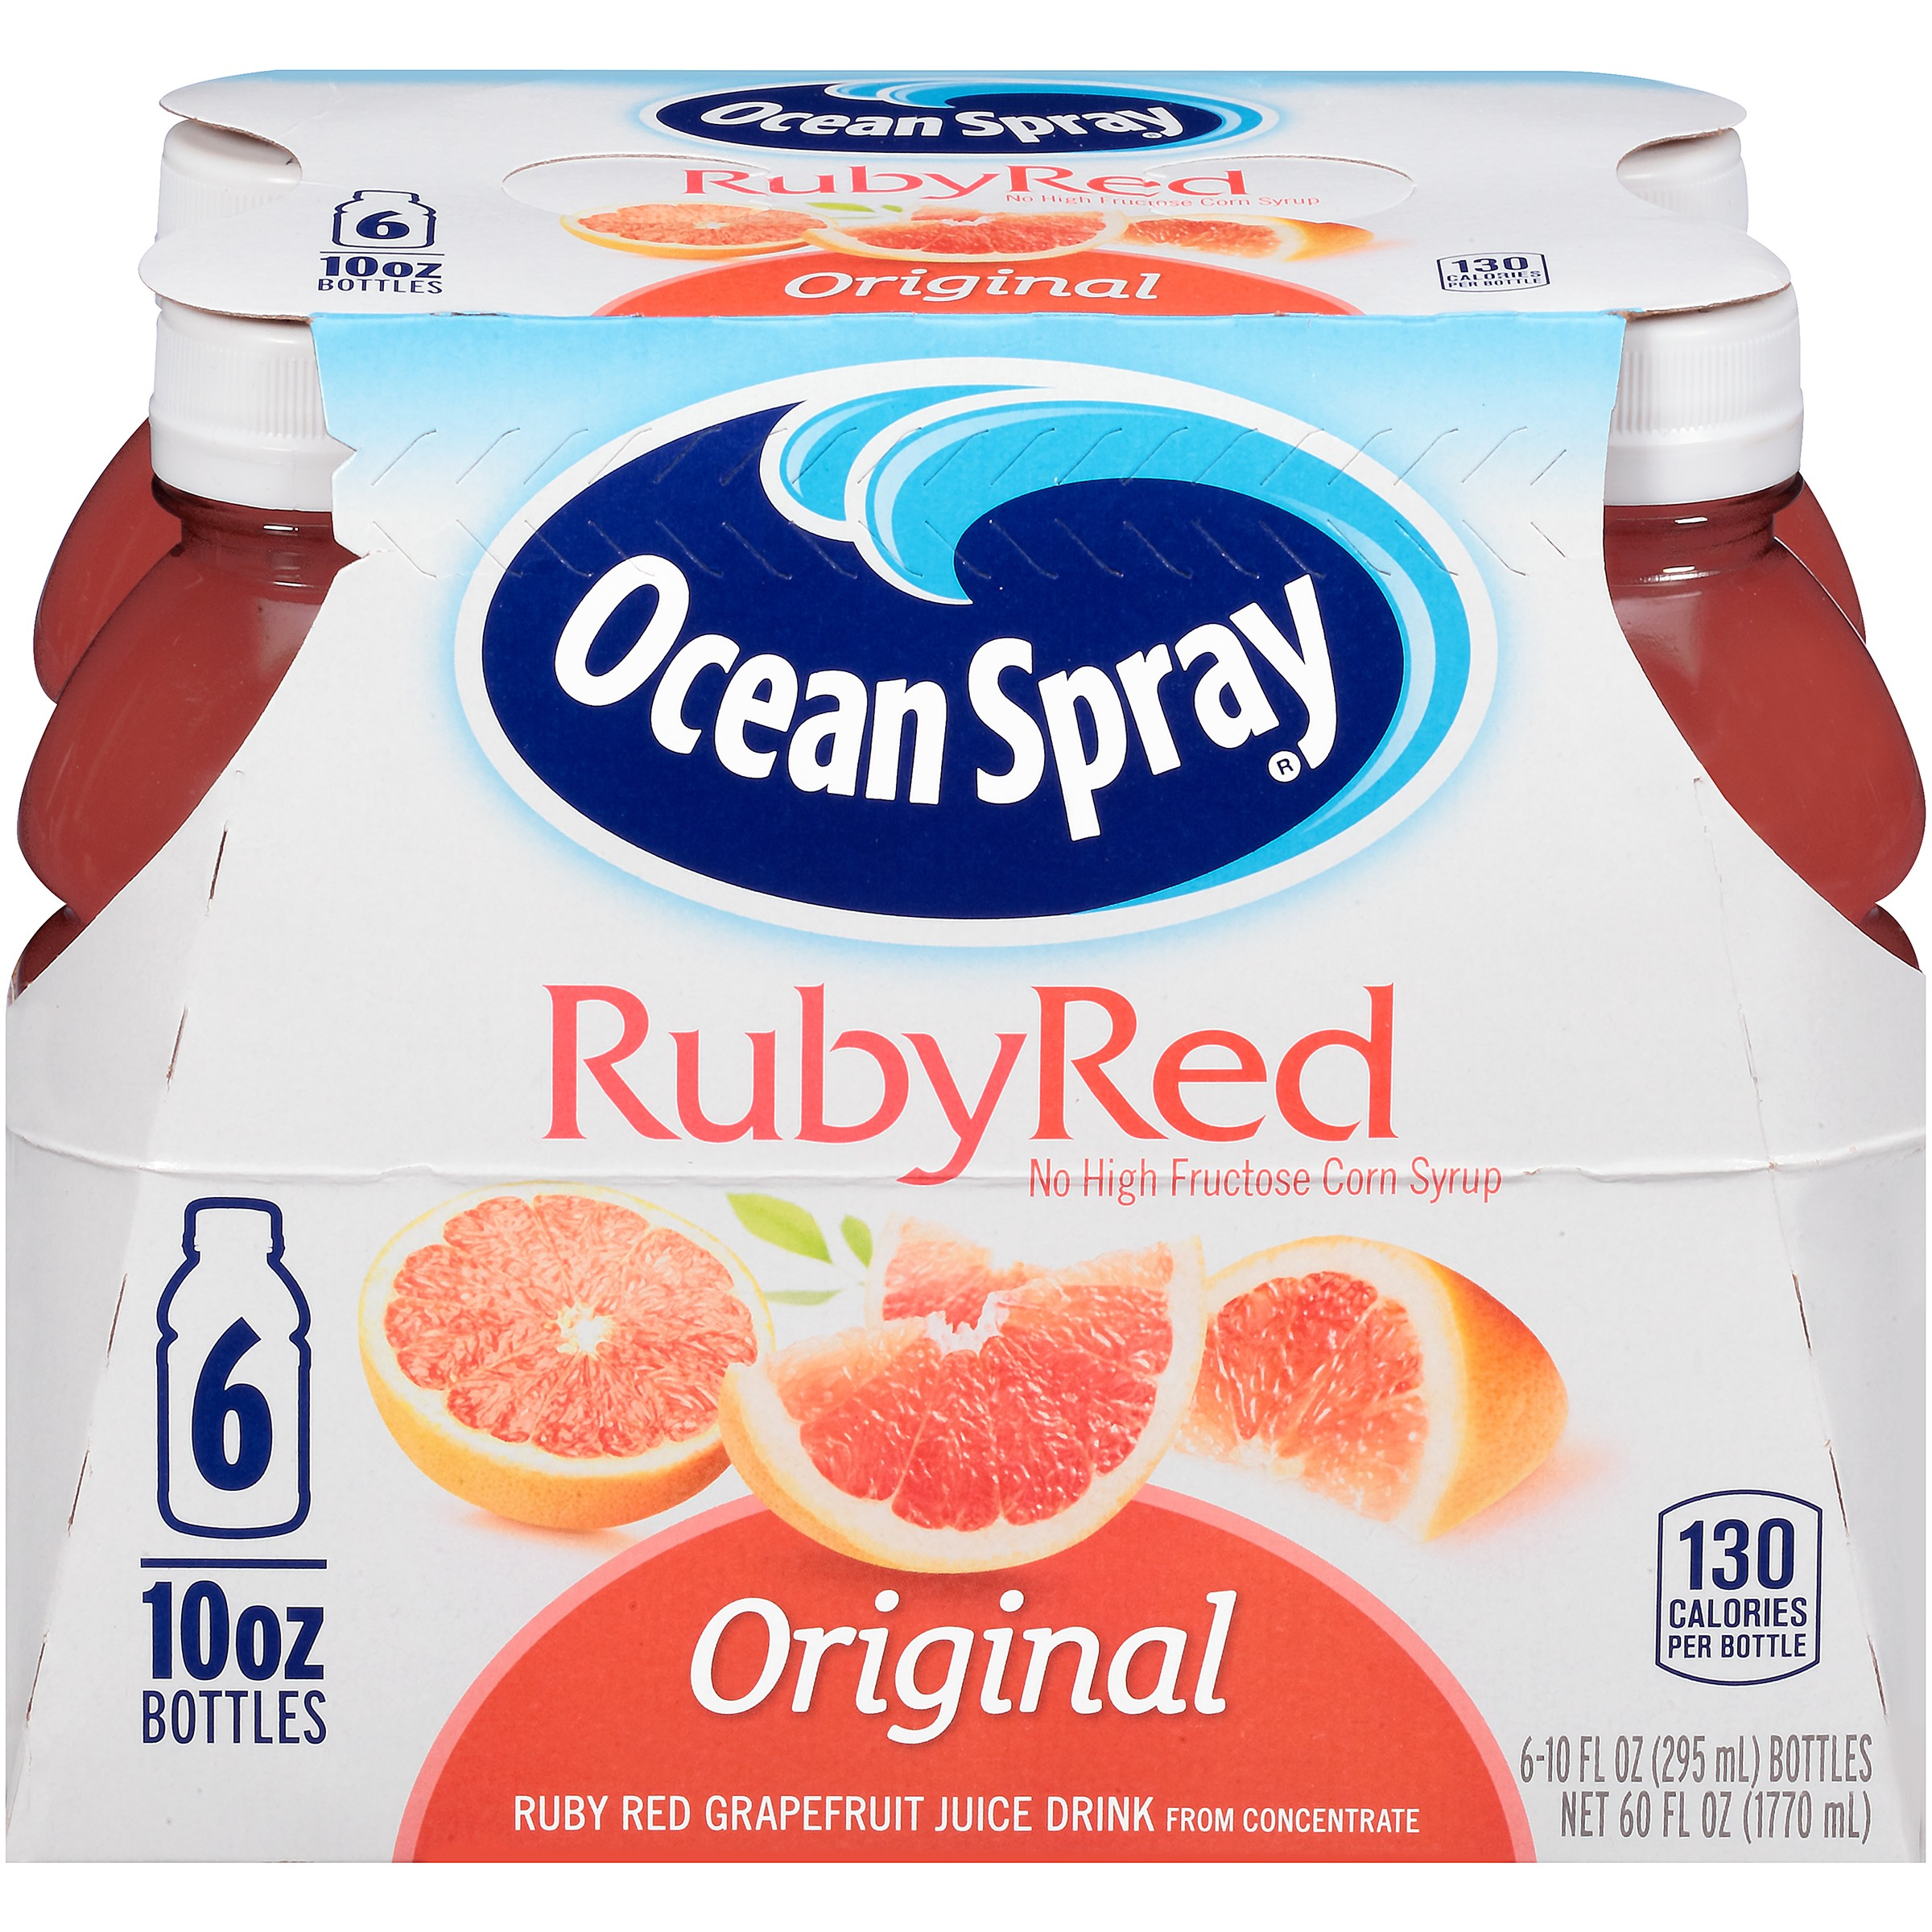 Ocean Spray Juice, Ruby Red Grapefruit, 10 Fl Oz, 6 Count